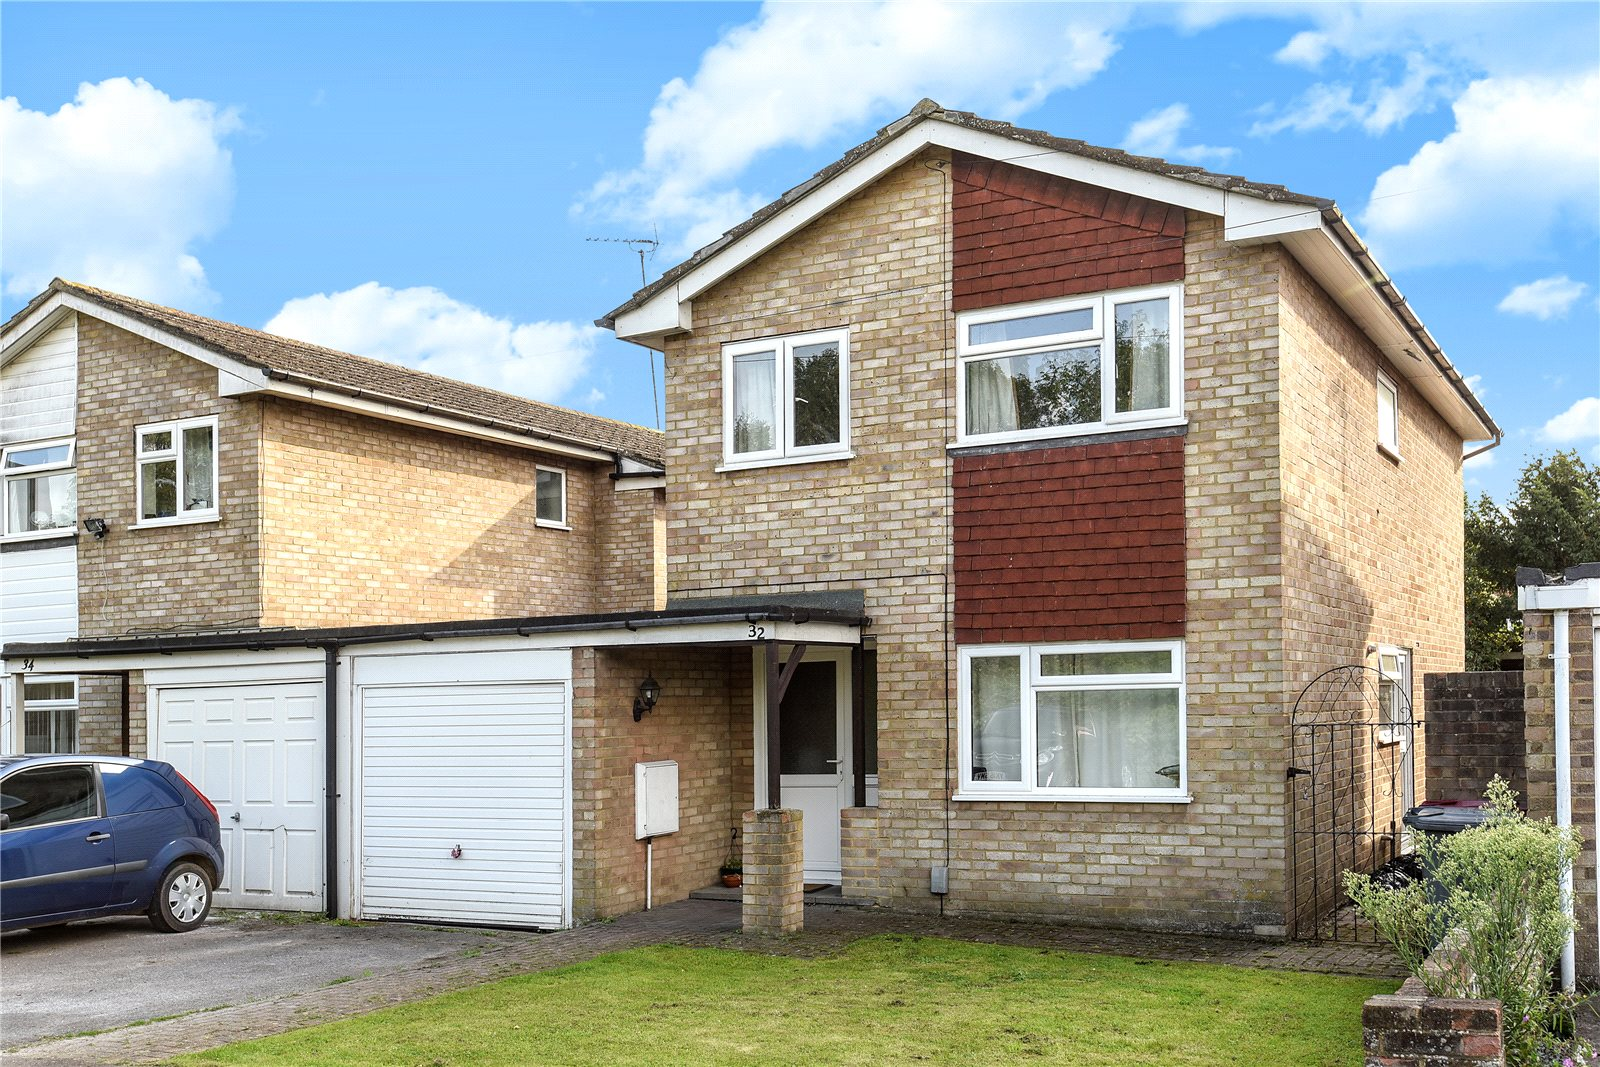 4 Bedrooms Link Detached House for sale in Salford Close, Reading, Berkshire, RG2